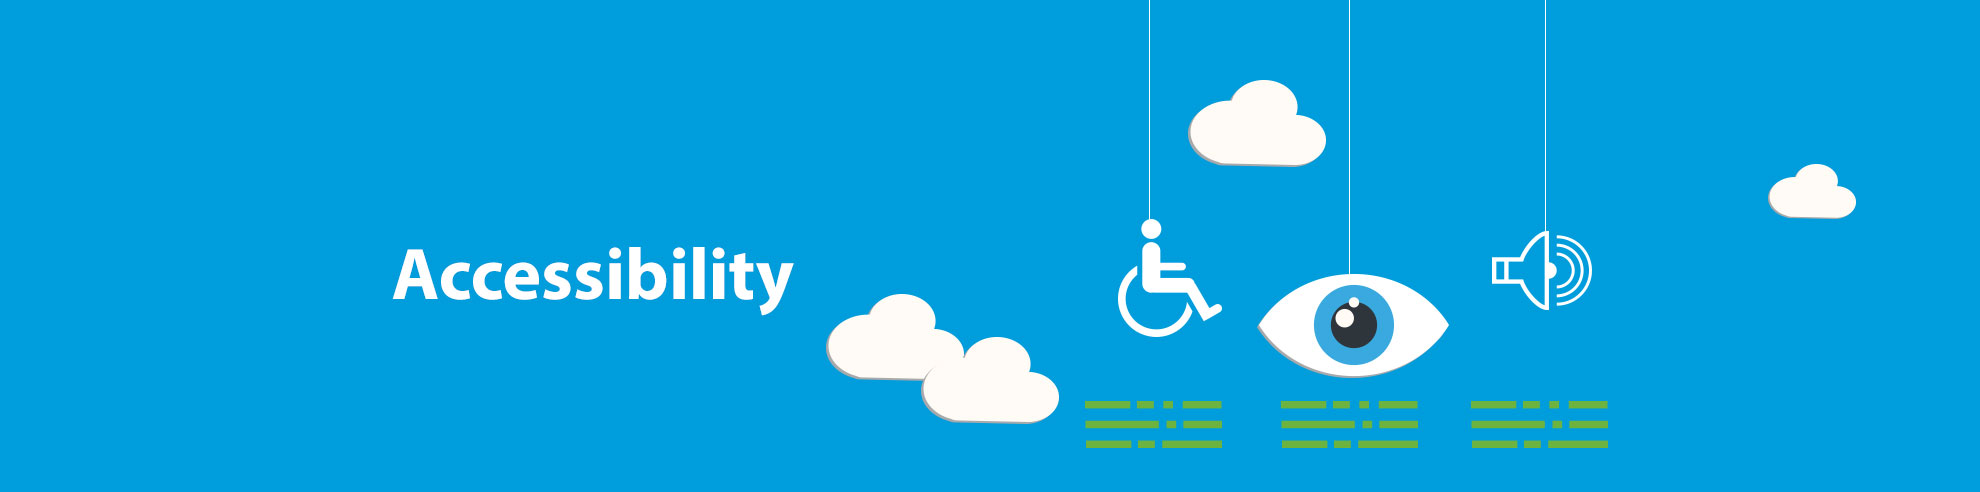 accessibility banner